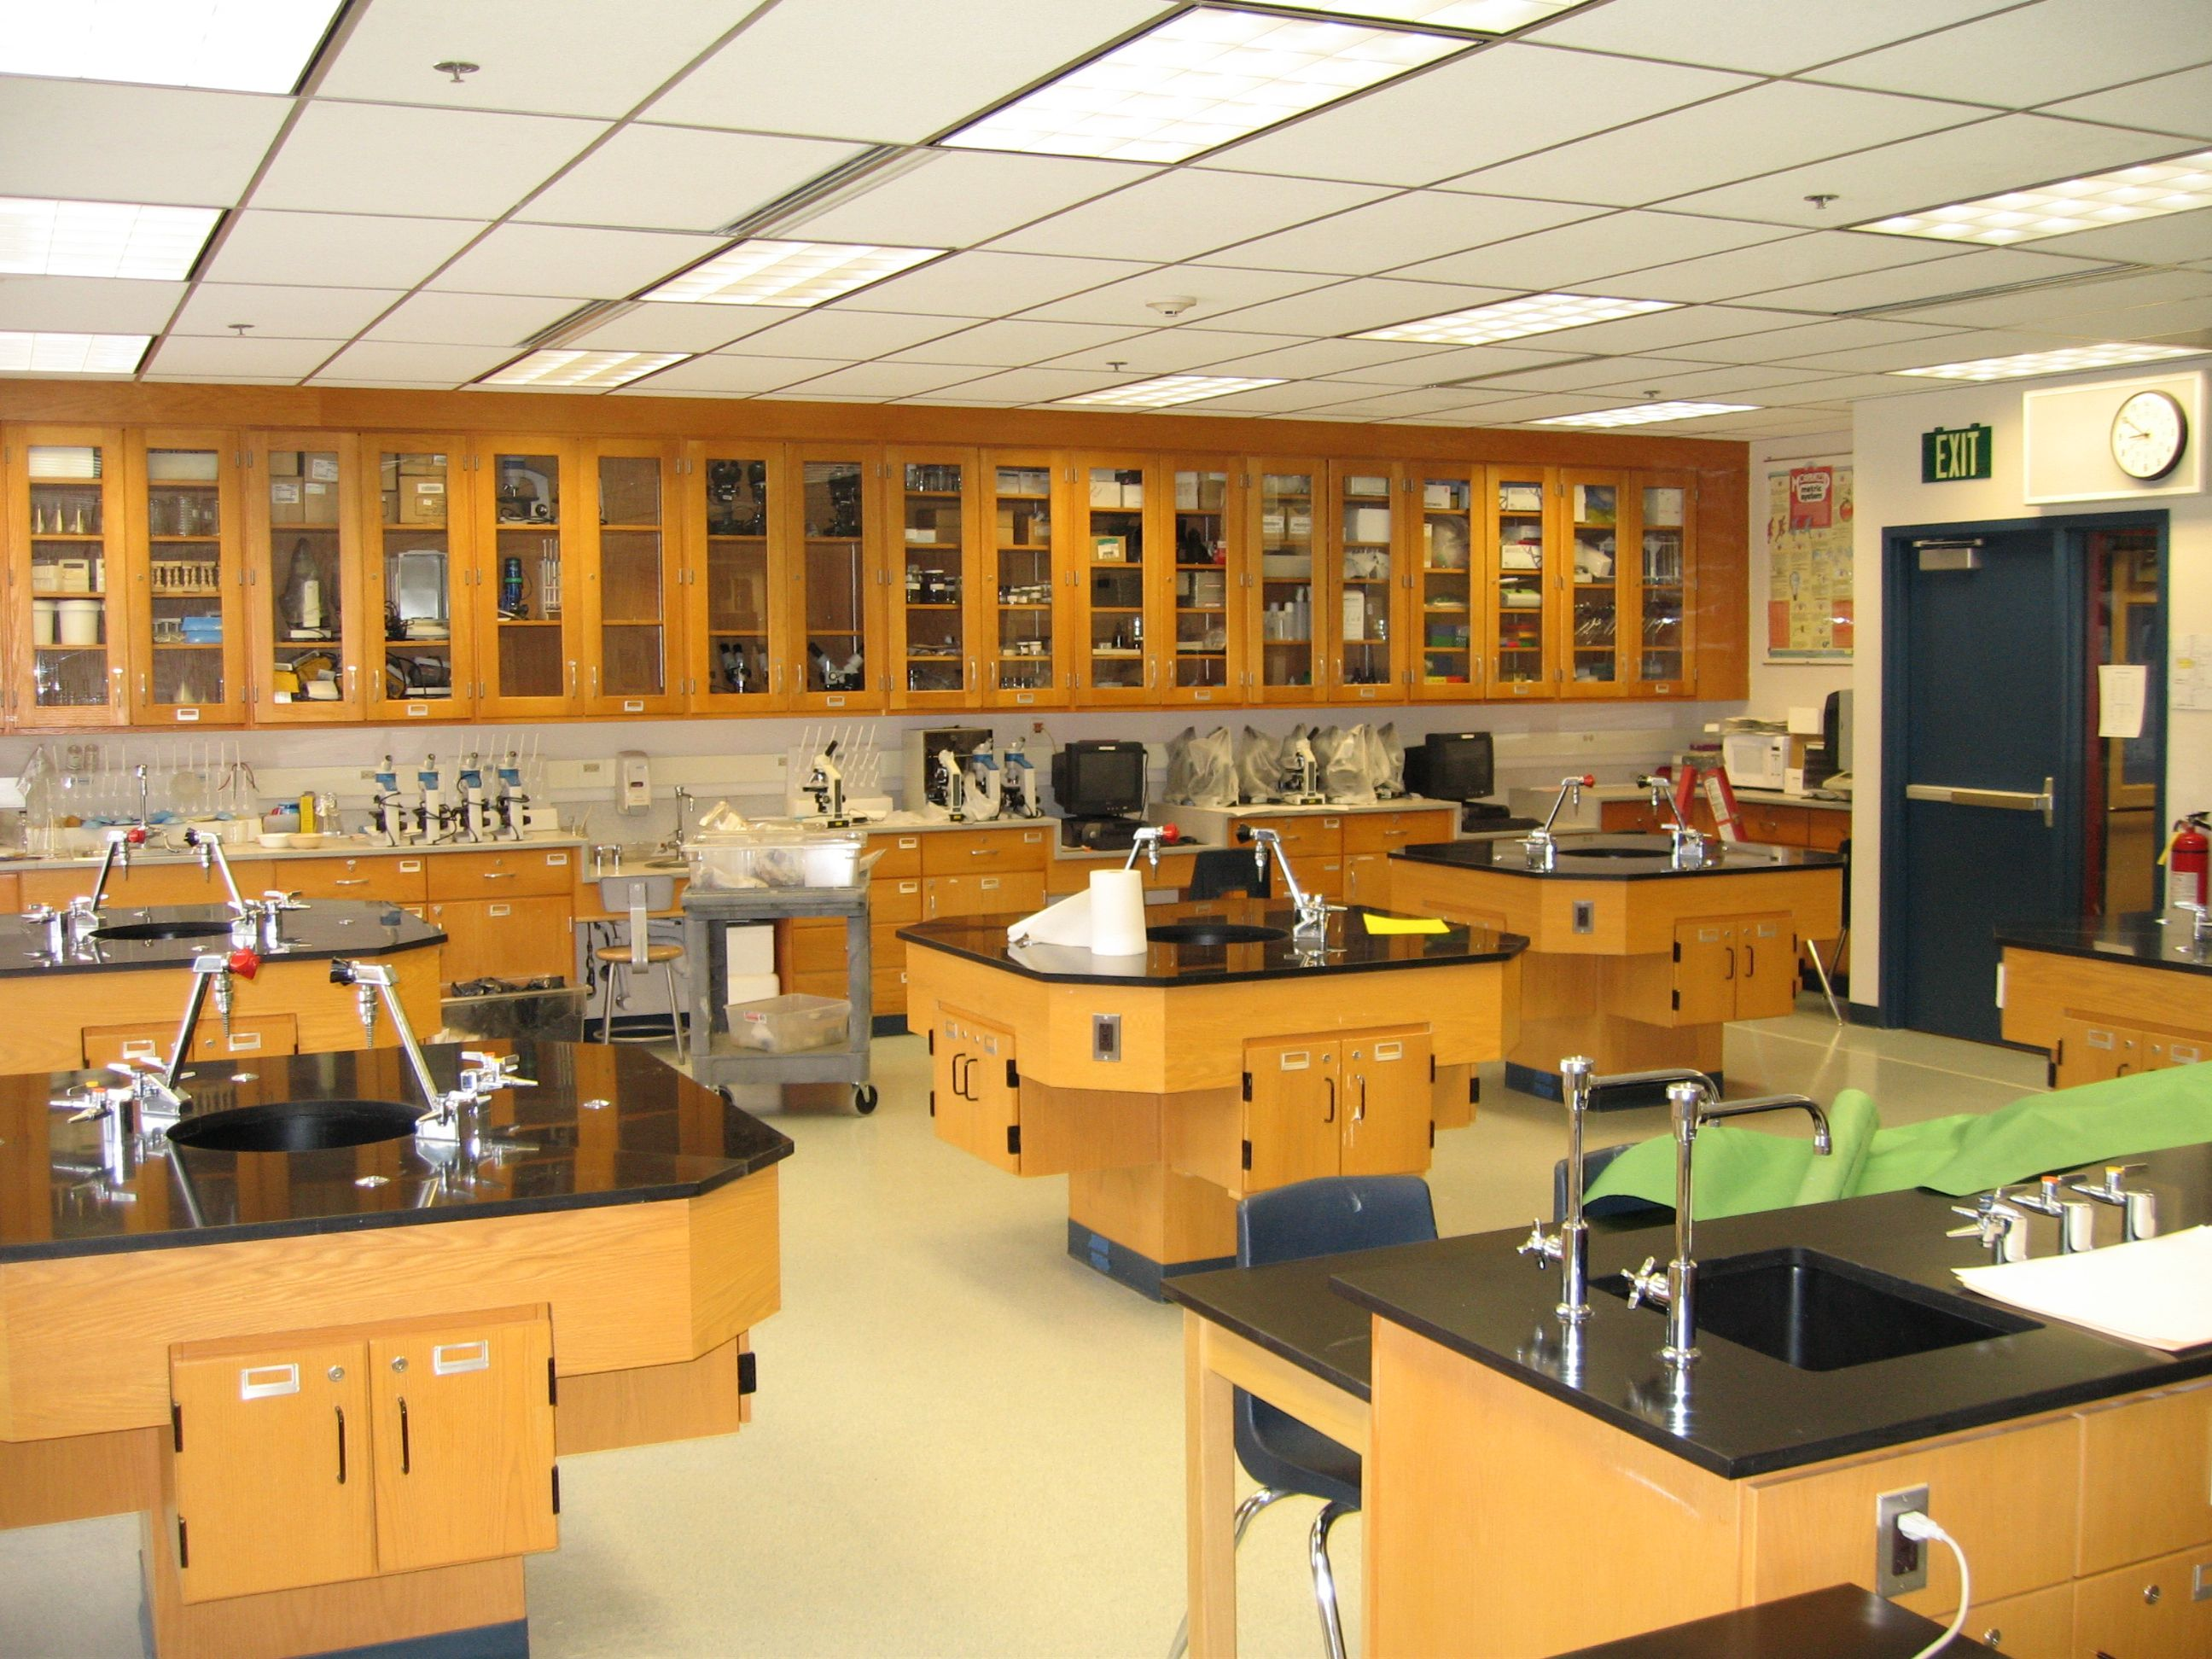 science classroom middle school - Google Search | Science ... High School Science Classroom